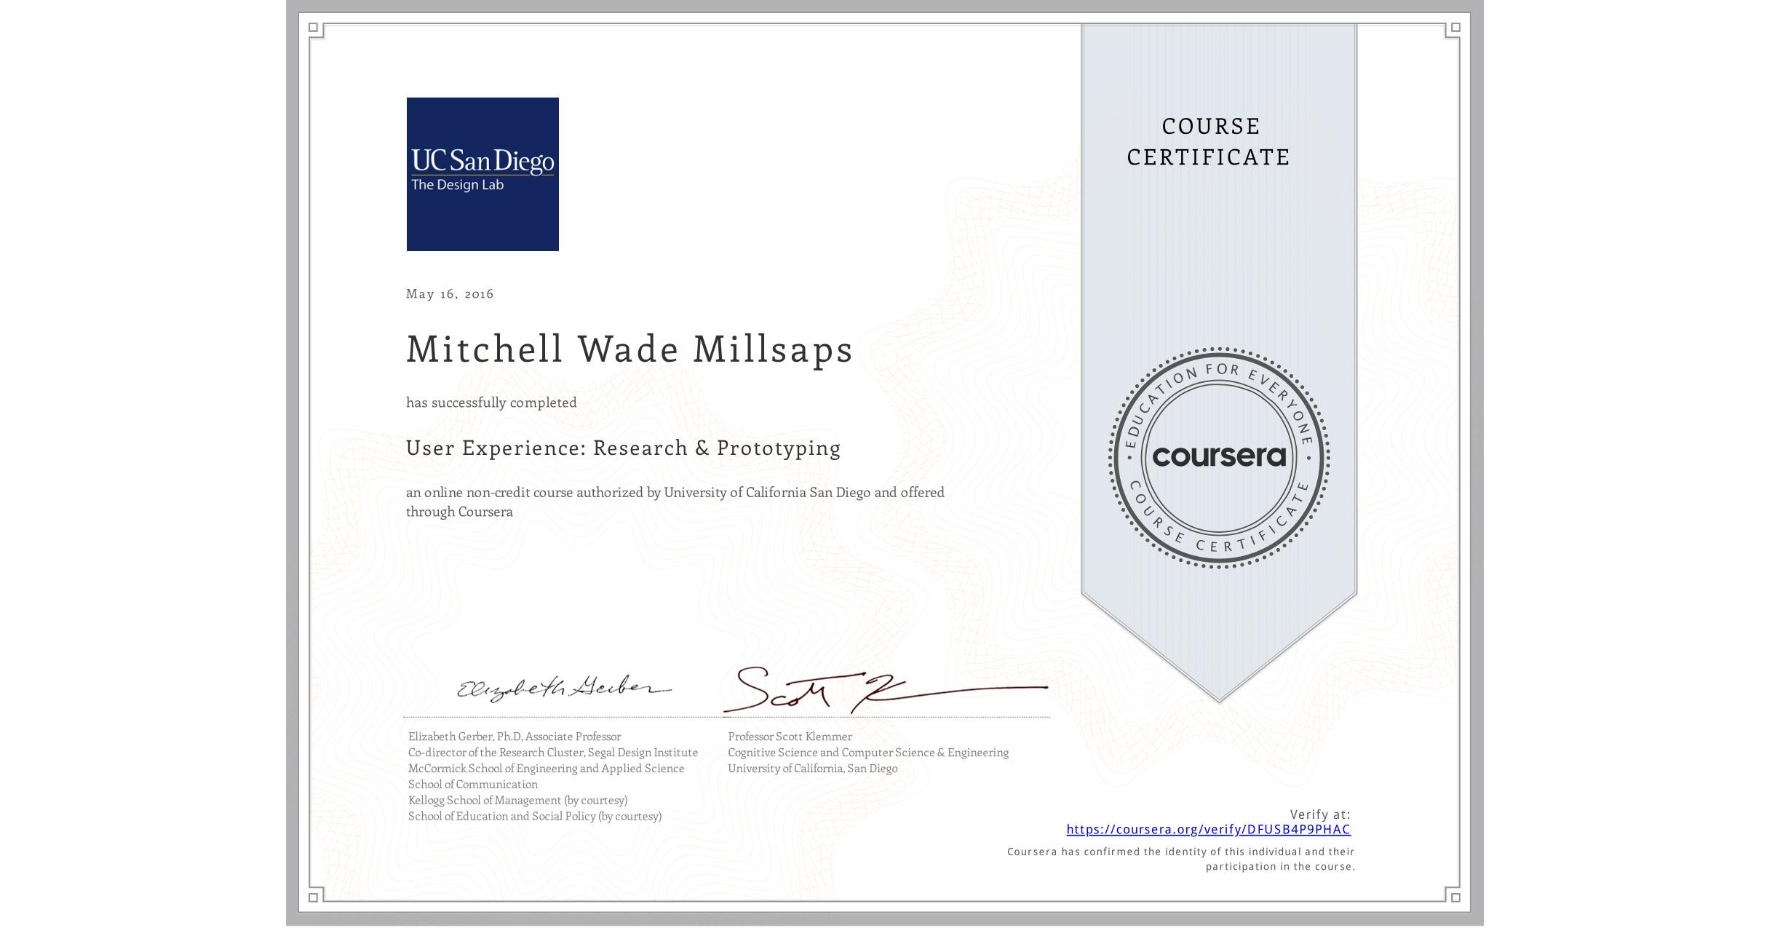 View certificate for Mitchell Wade Millsaps, User Experience: Research & Prototyping, an online non-credit course authorized by University of California San Diego and offered through Coursera